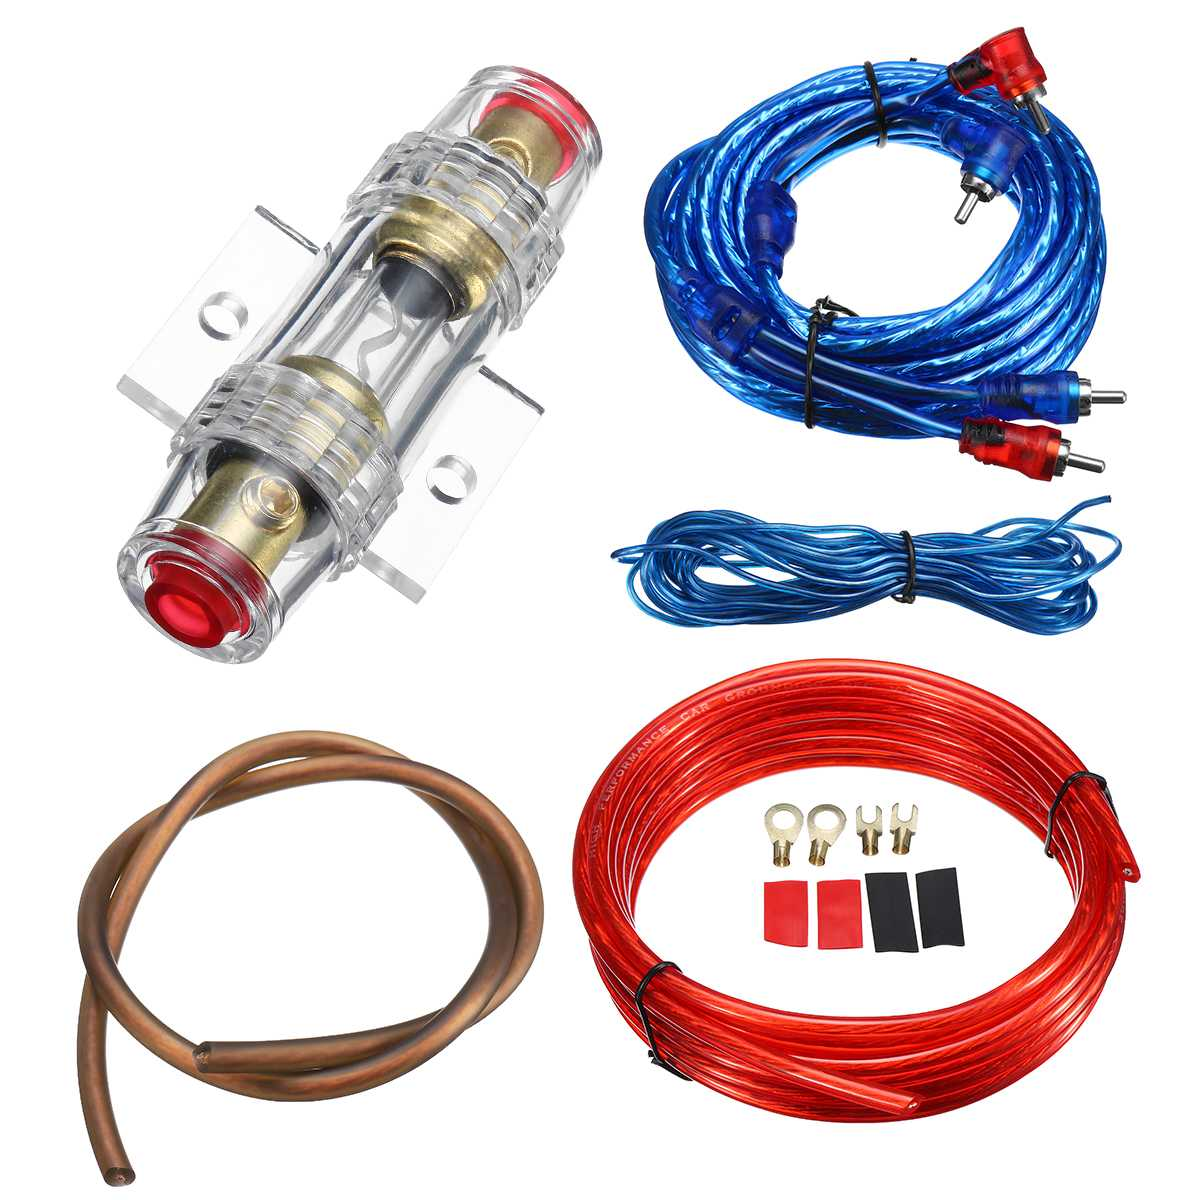 medium resolution of 1500w car audio wire 8ga amplifier cable subwoofer speaker installation kit amp rca power cable agu fuse set in battery cables connectors from automobiles